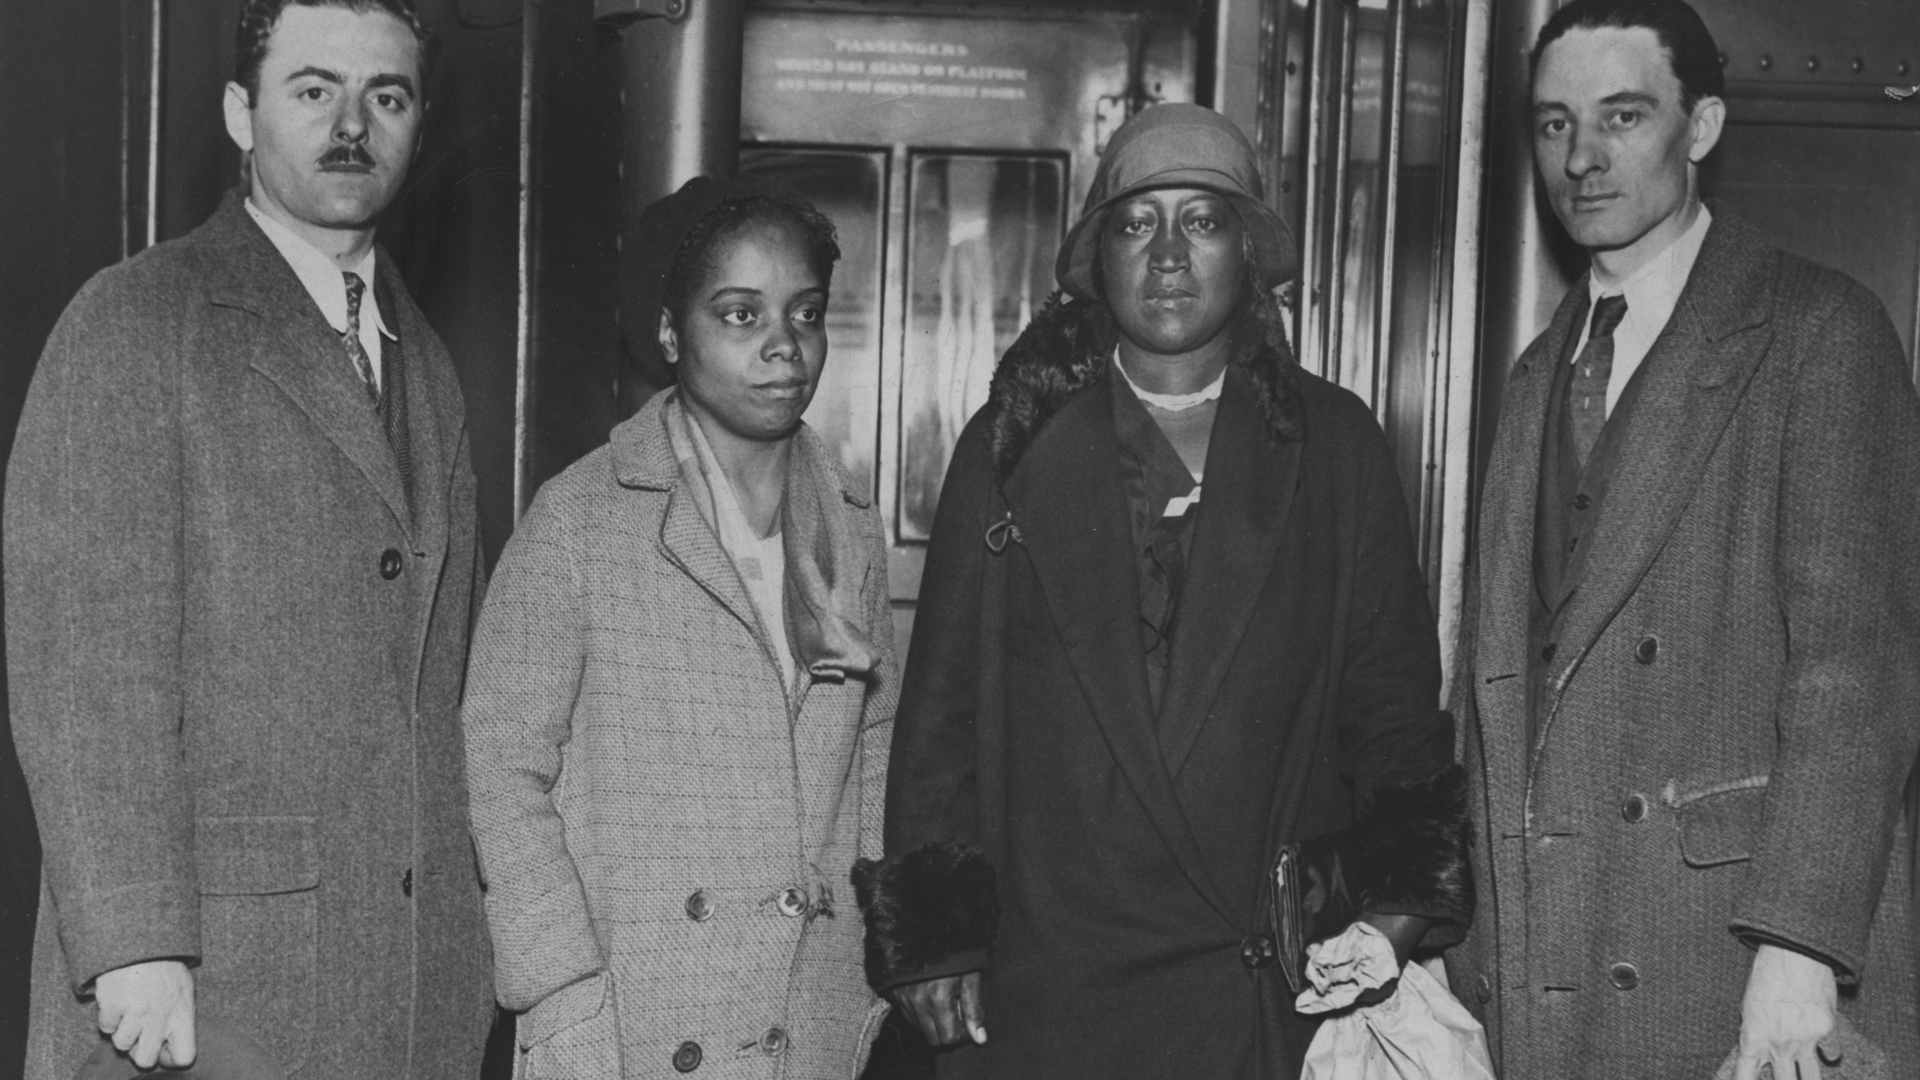 Communist Party members with the mother of Haywood Patterson, Janie Patterson (right), 1931. (Credit: Afro American Newspapers/Gado/Getty Images)